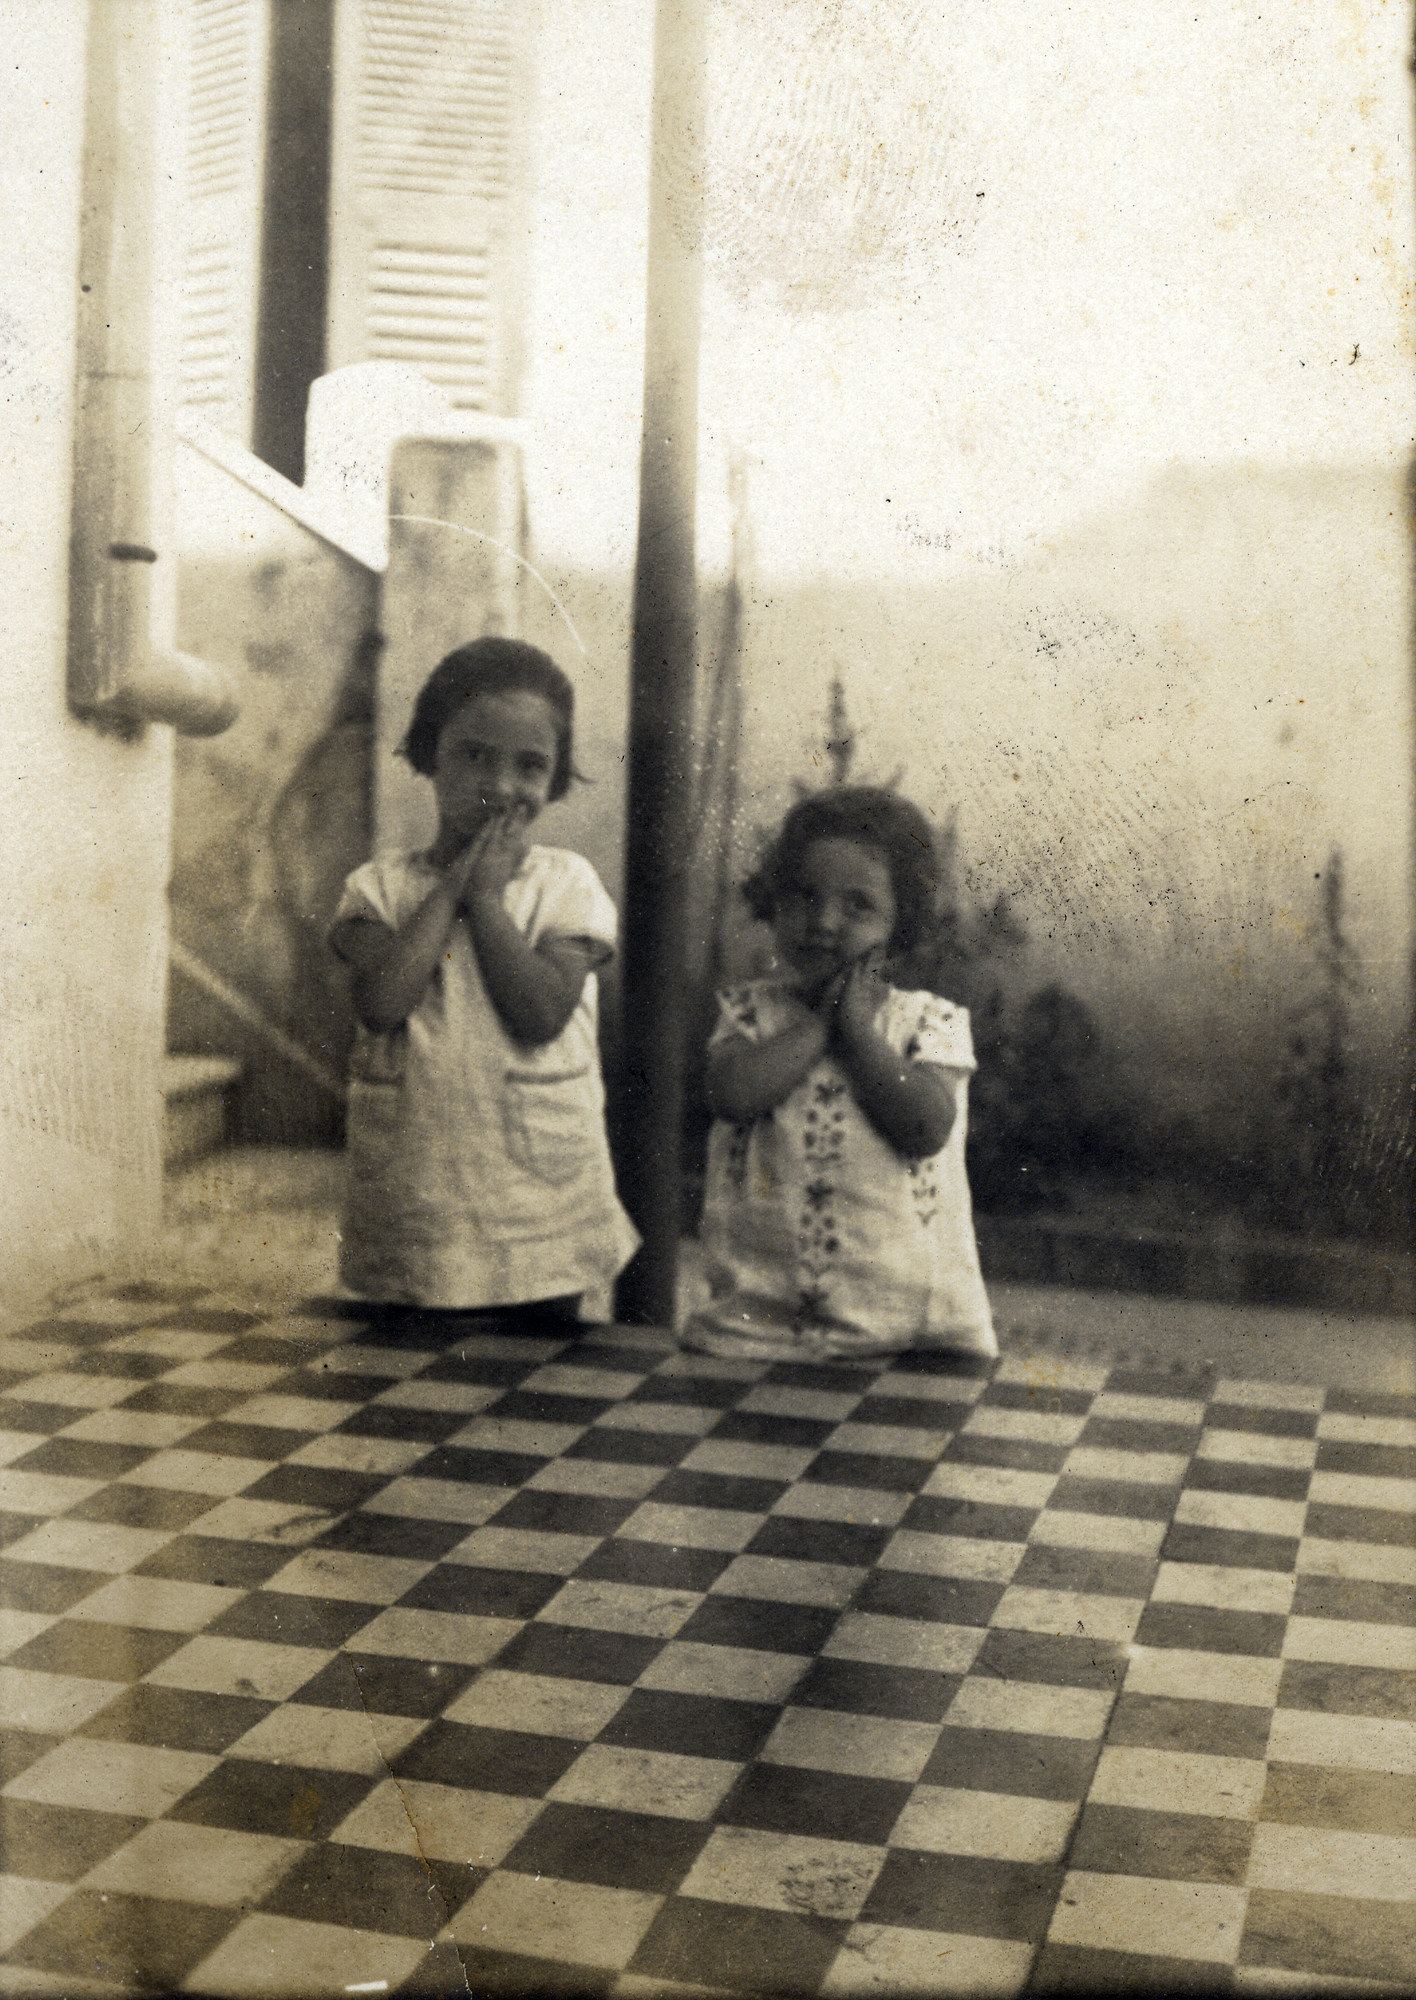 Close-up of two young girs; Esther (right) and Jenny Ezratty (left) in Salonika around 1922-1923.